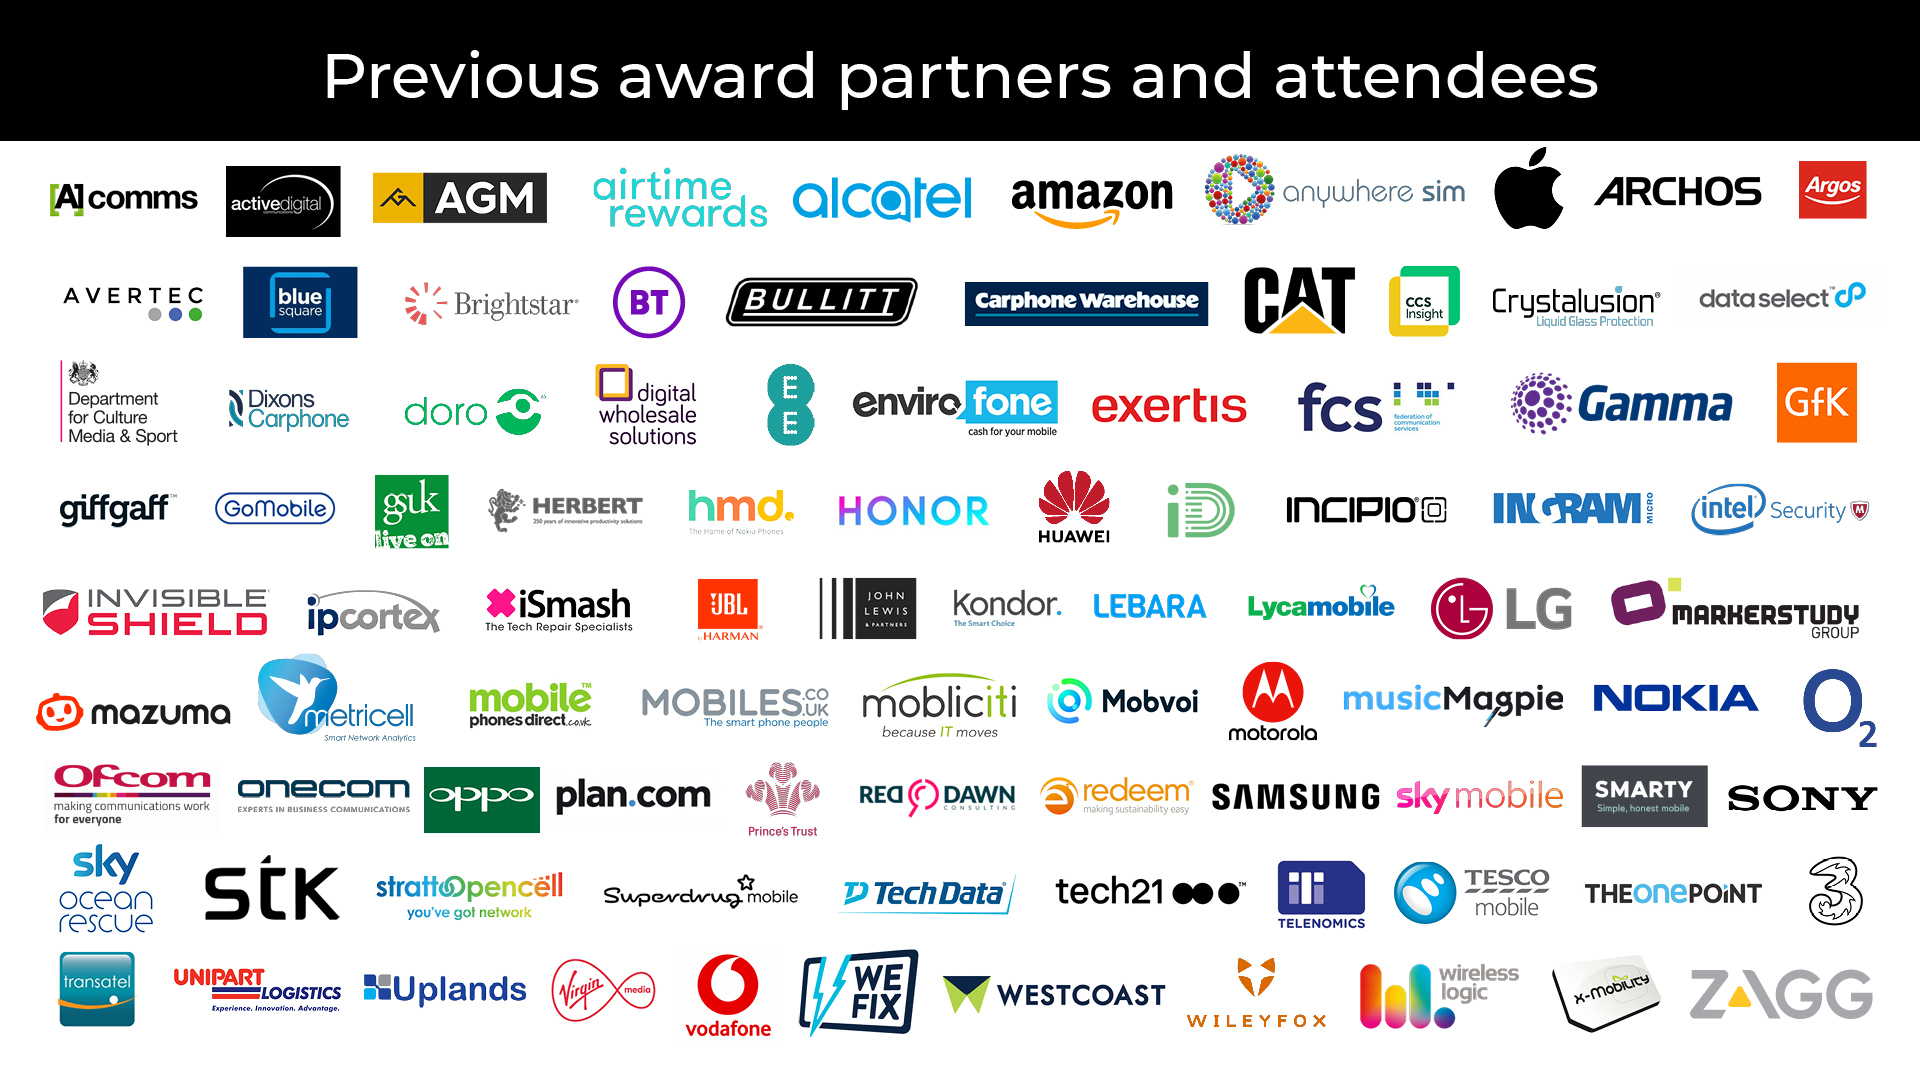 Categories for the Mobile Industry Awards